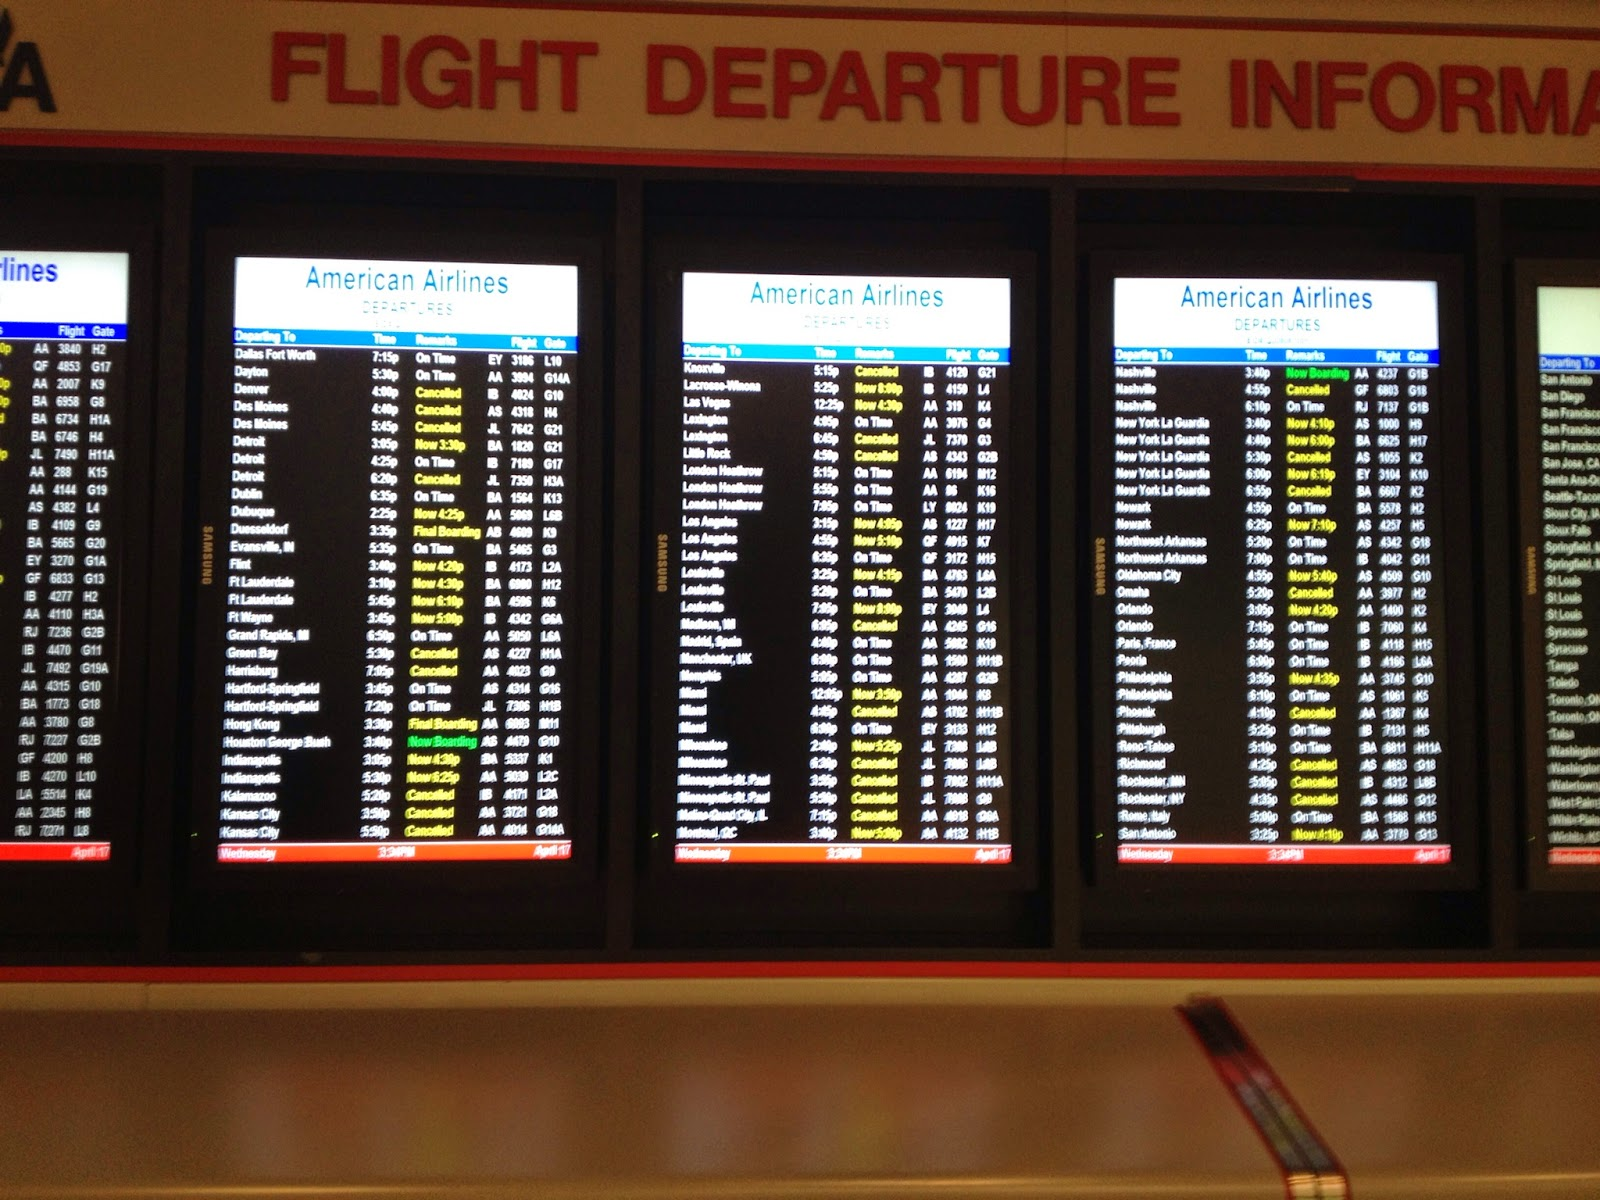 Cancelled Flights on Flight Departure Board